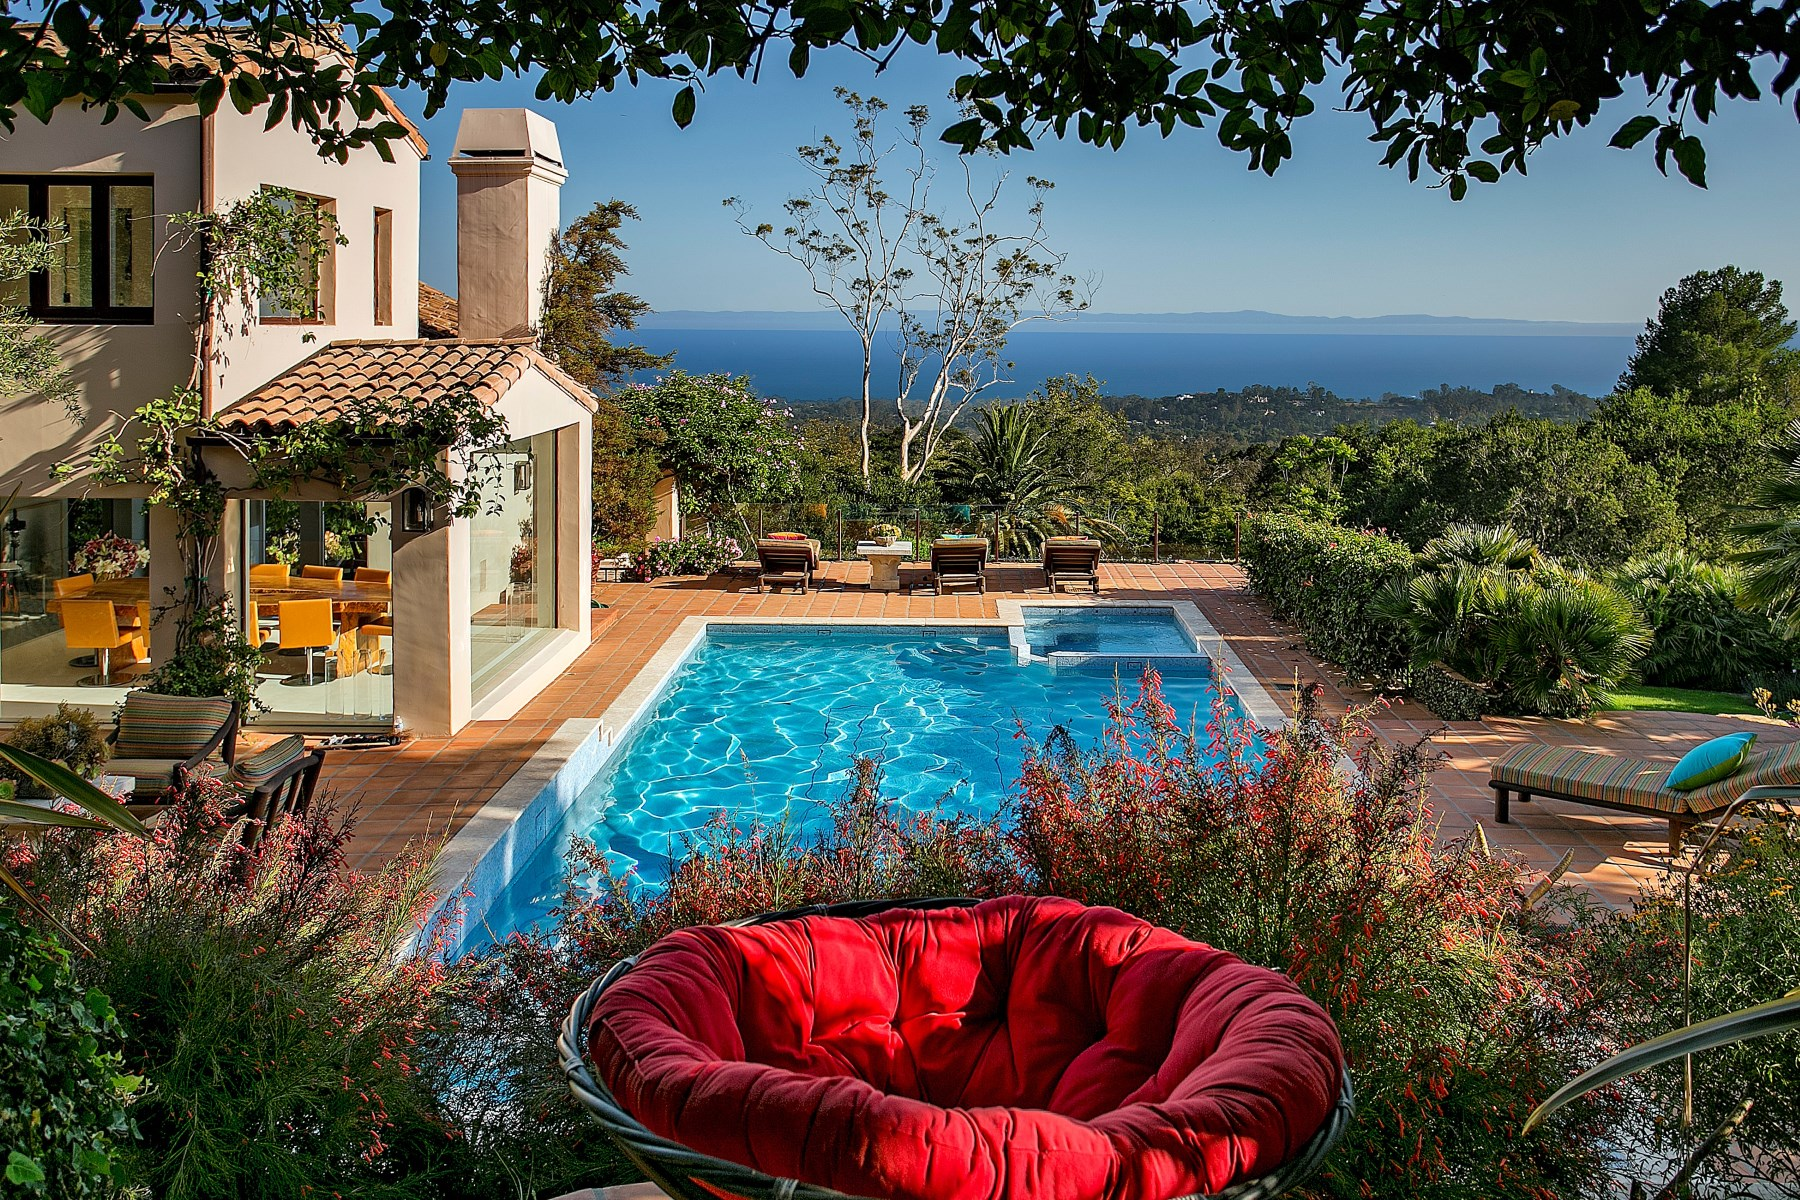 Single Family Home for Sale at A Secluded Retreat 995 Hot Springs Road Montecito - Upper Village, Montecito, California, 93108 United States